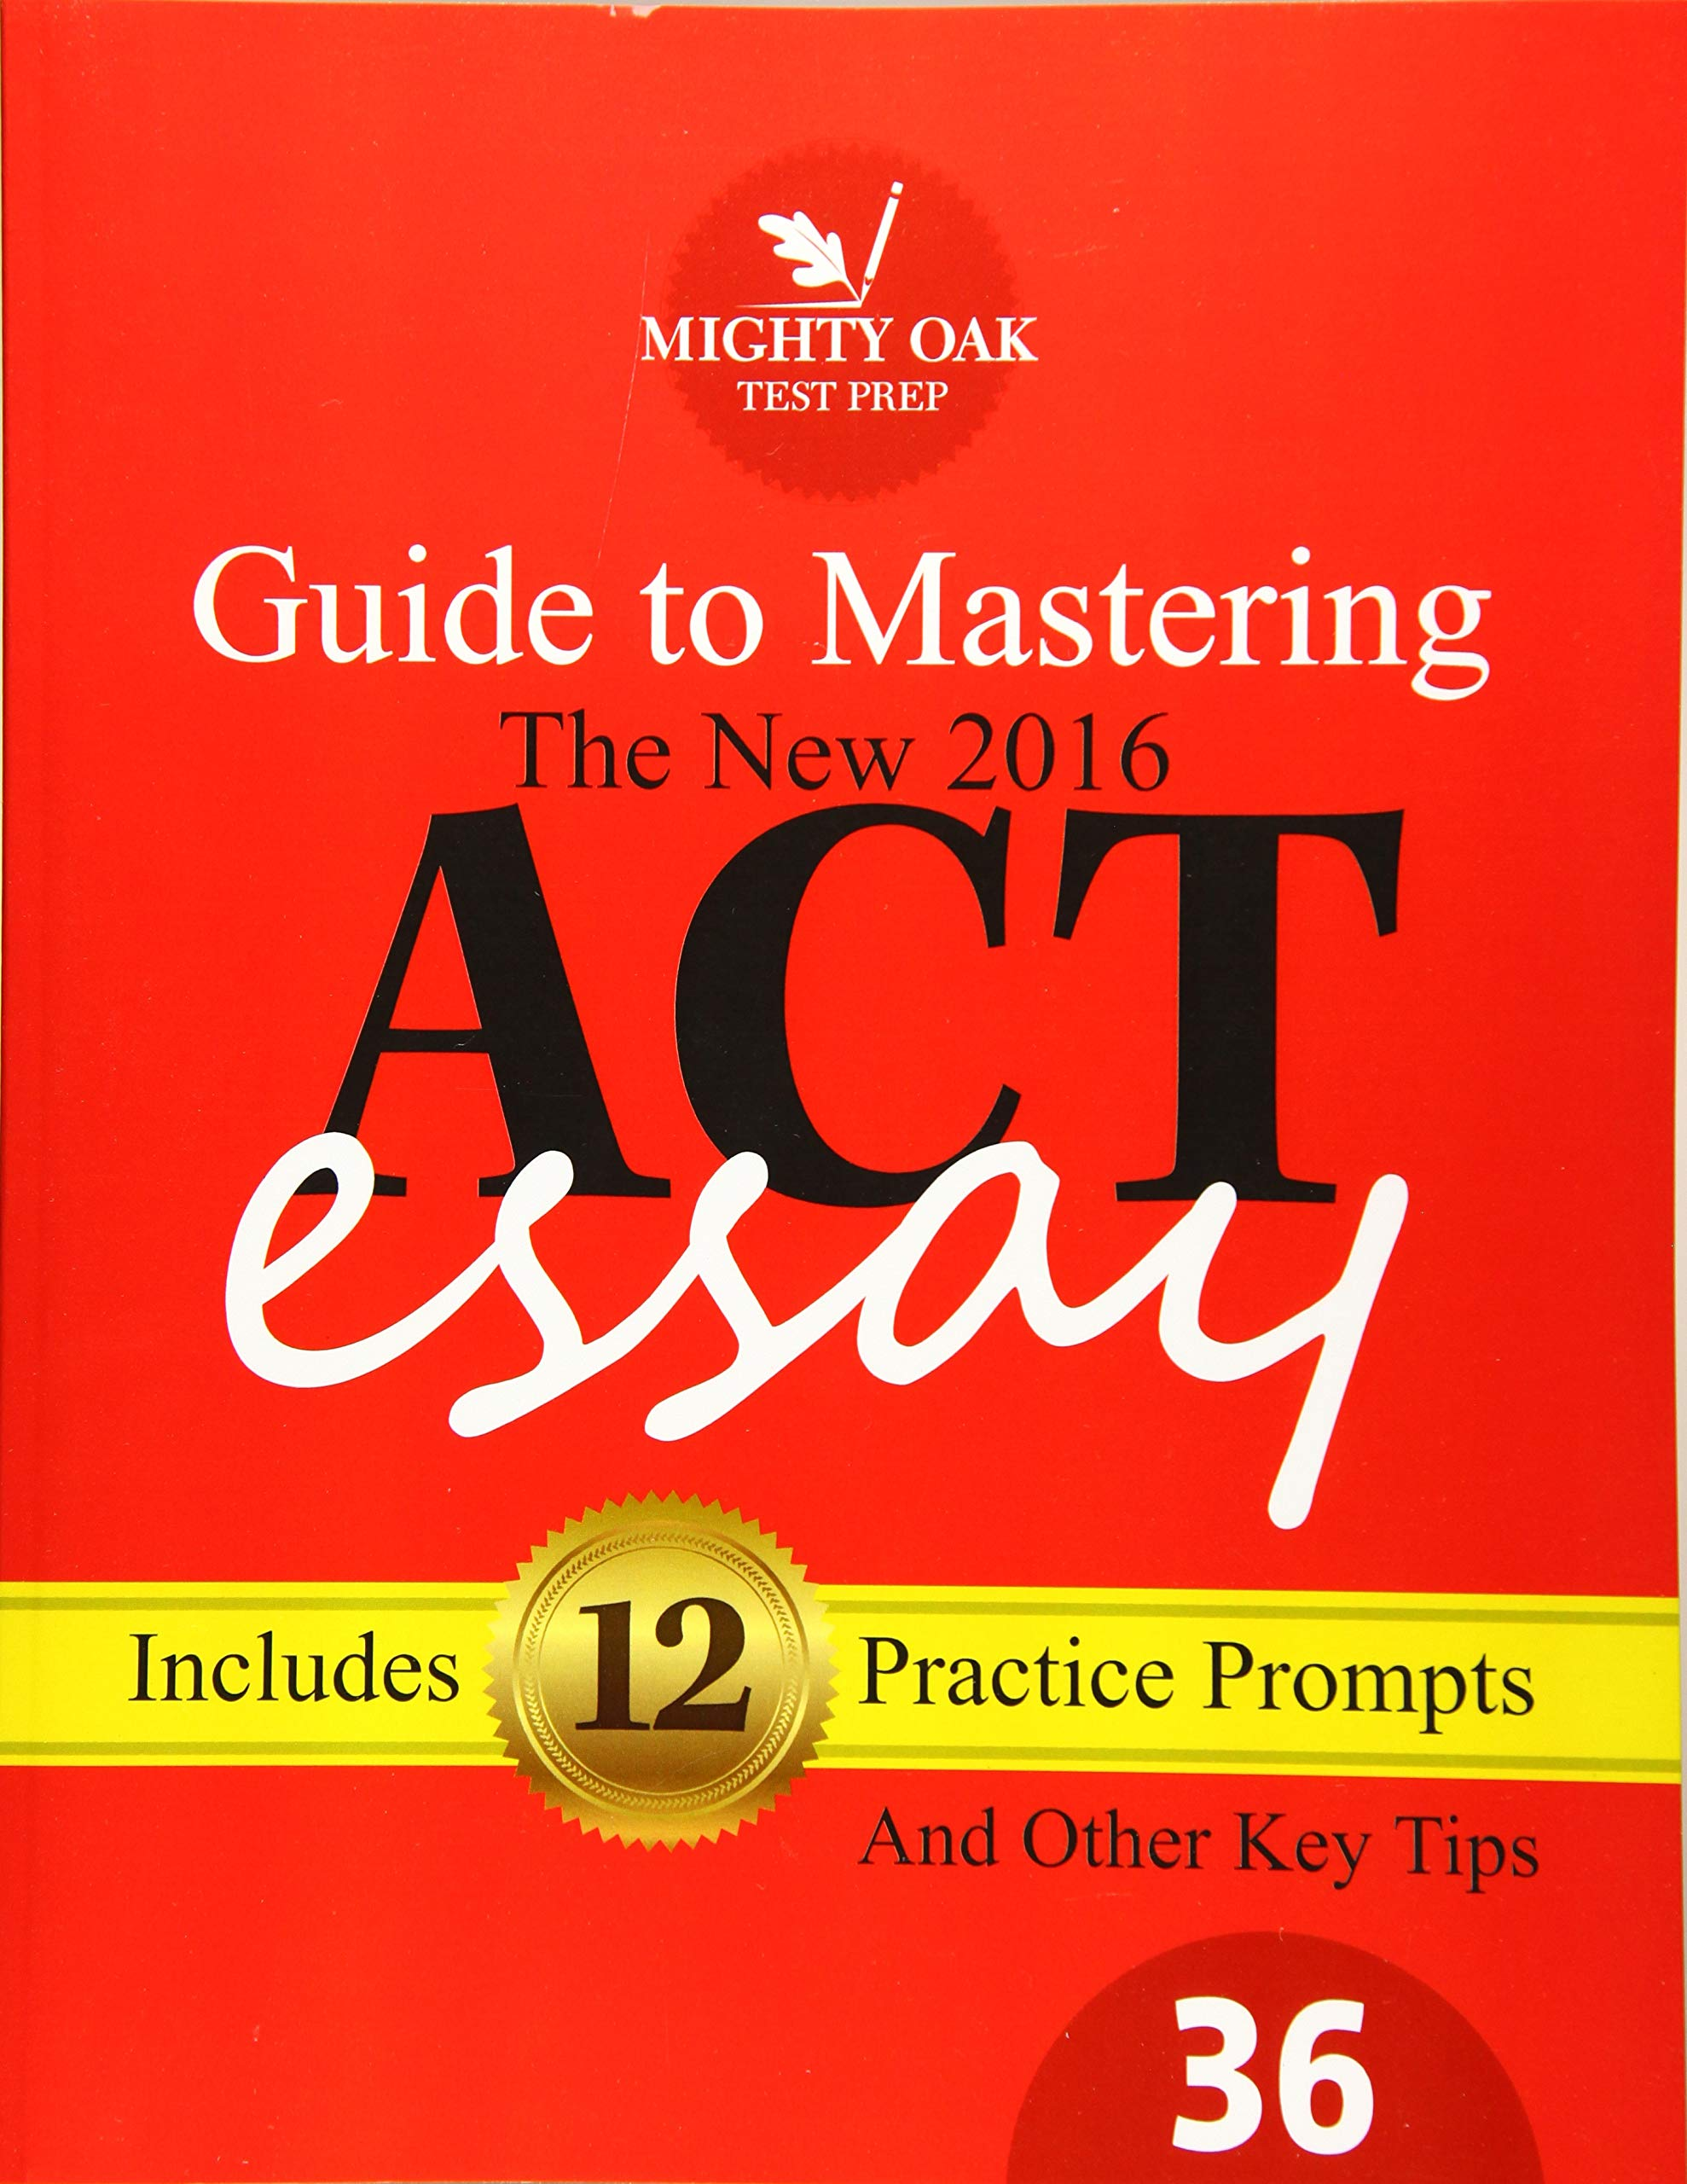 Amazon Mighty Oak Guide To Mastering The 2016 ACT Essay For